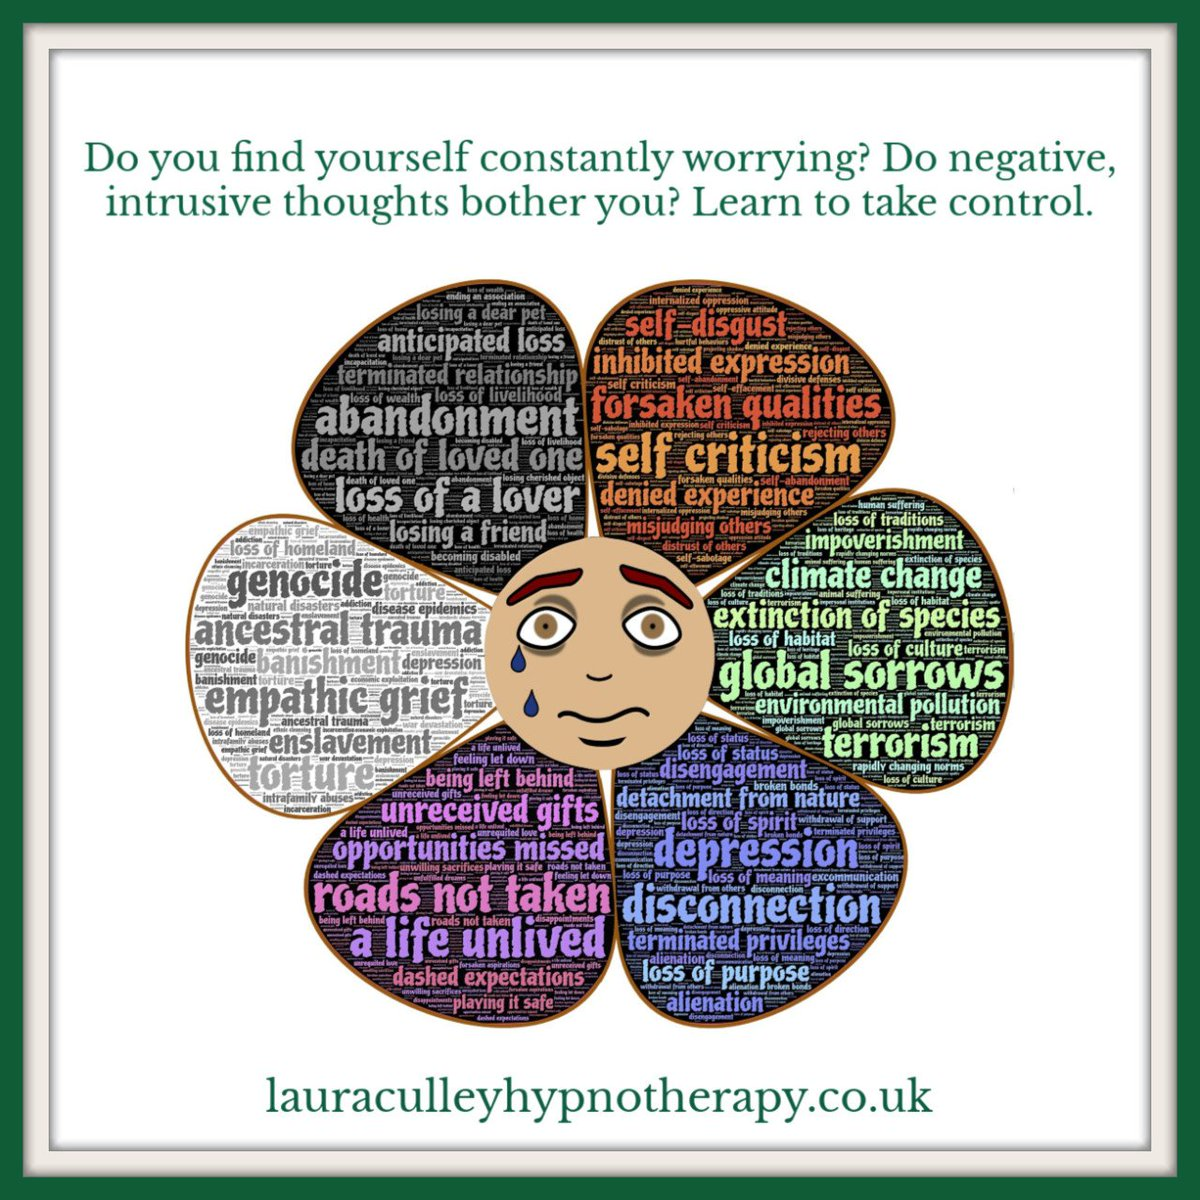 Do you constantly #worry over every little thing?  Do you think of yourself as a #worrier and think life will always be the same? It doesn't have to be. We have the power to take control.  #OvercomeWorry #Hypnotherapy #IntrusiveThoughts #OCDpic.twitter.com/39f36wfA3e